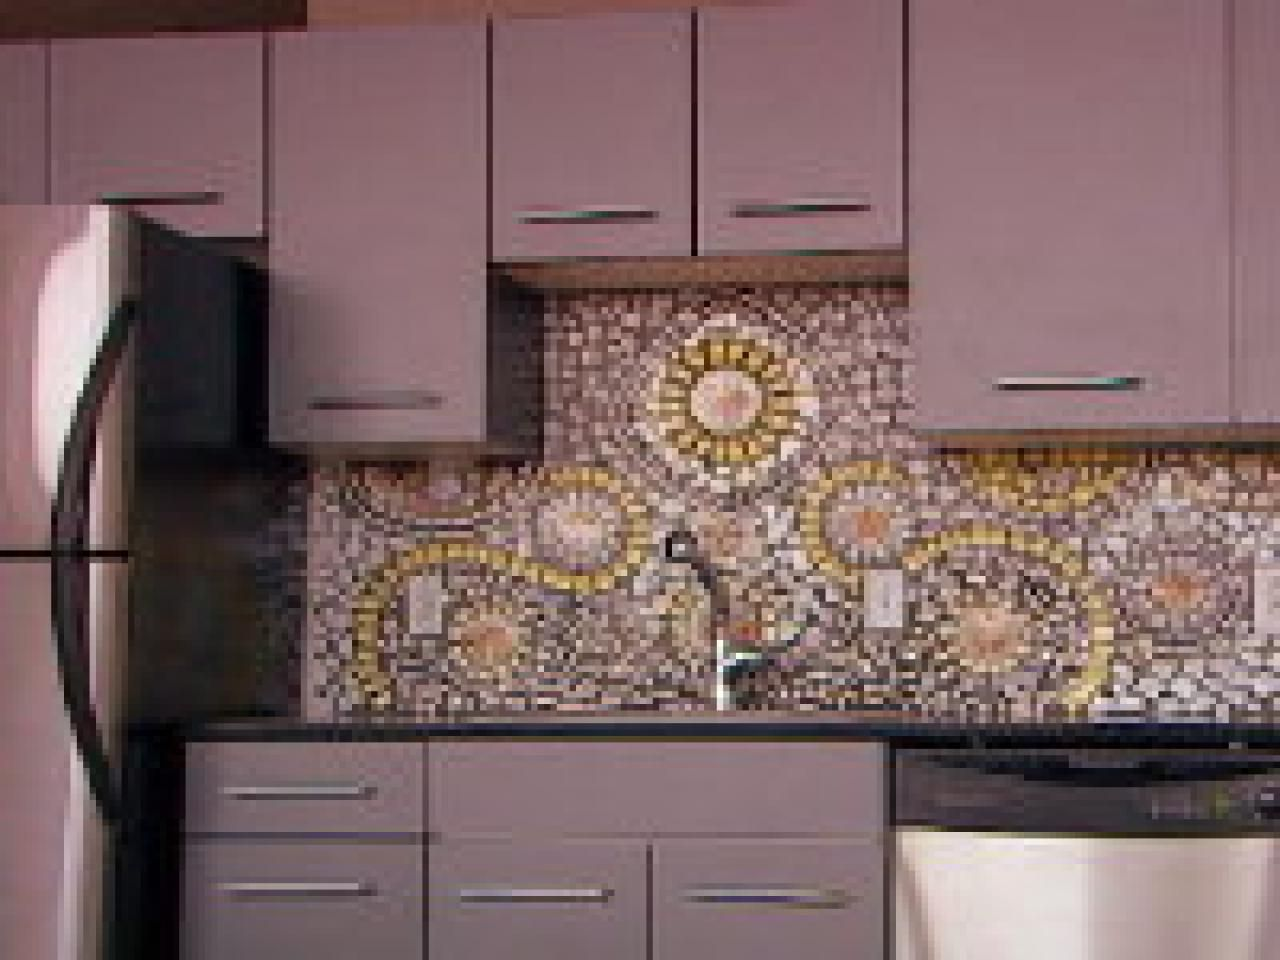 Mosaic Kitchen Backsplash Ideas Part - 21: Create A Beautiful, Unique Mosaic Kitchen Backsplash Made From Broken China  Plates And Cups On